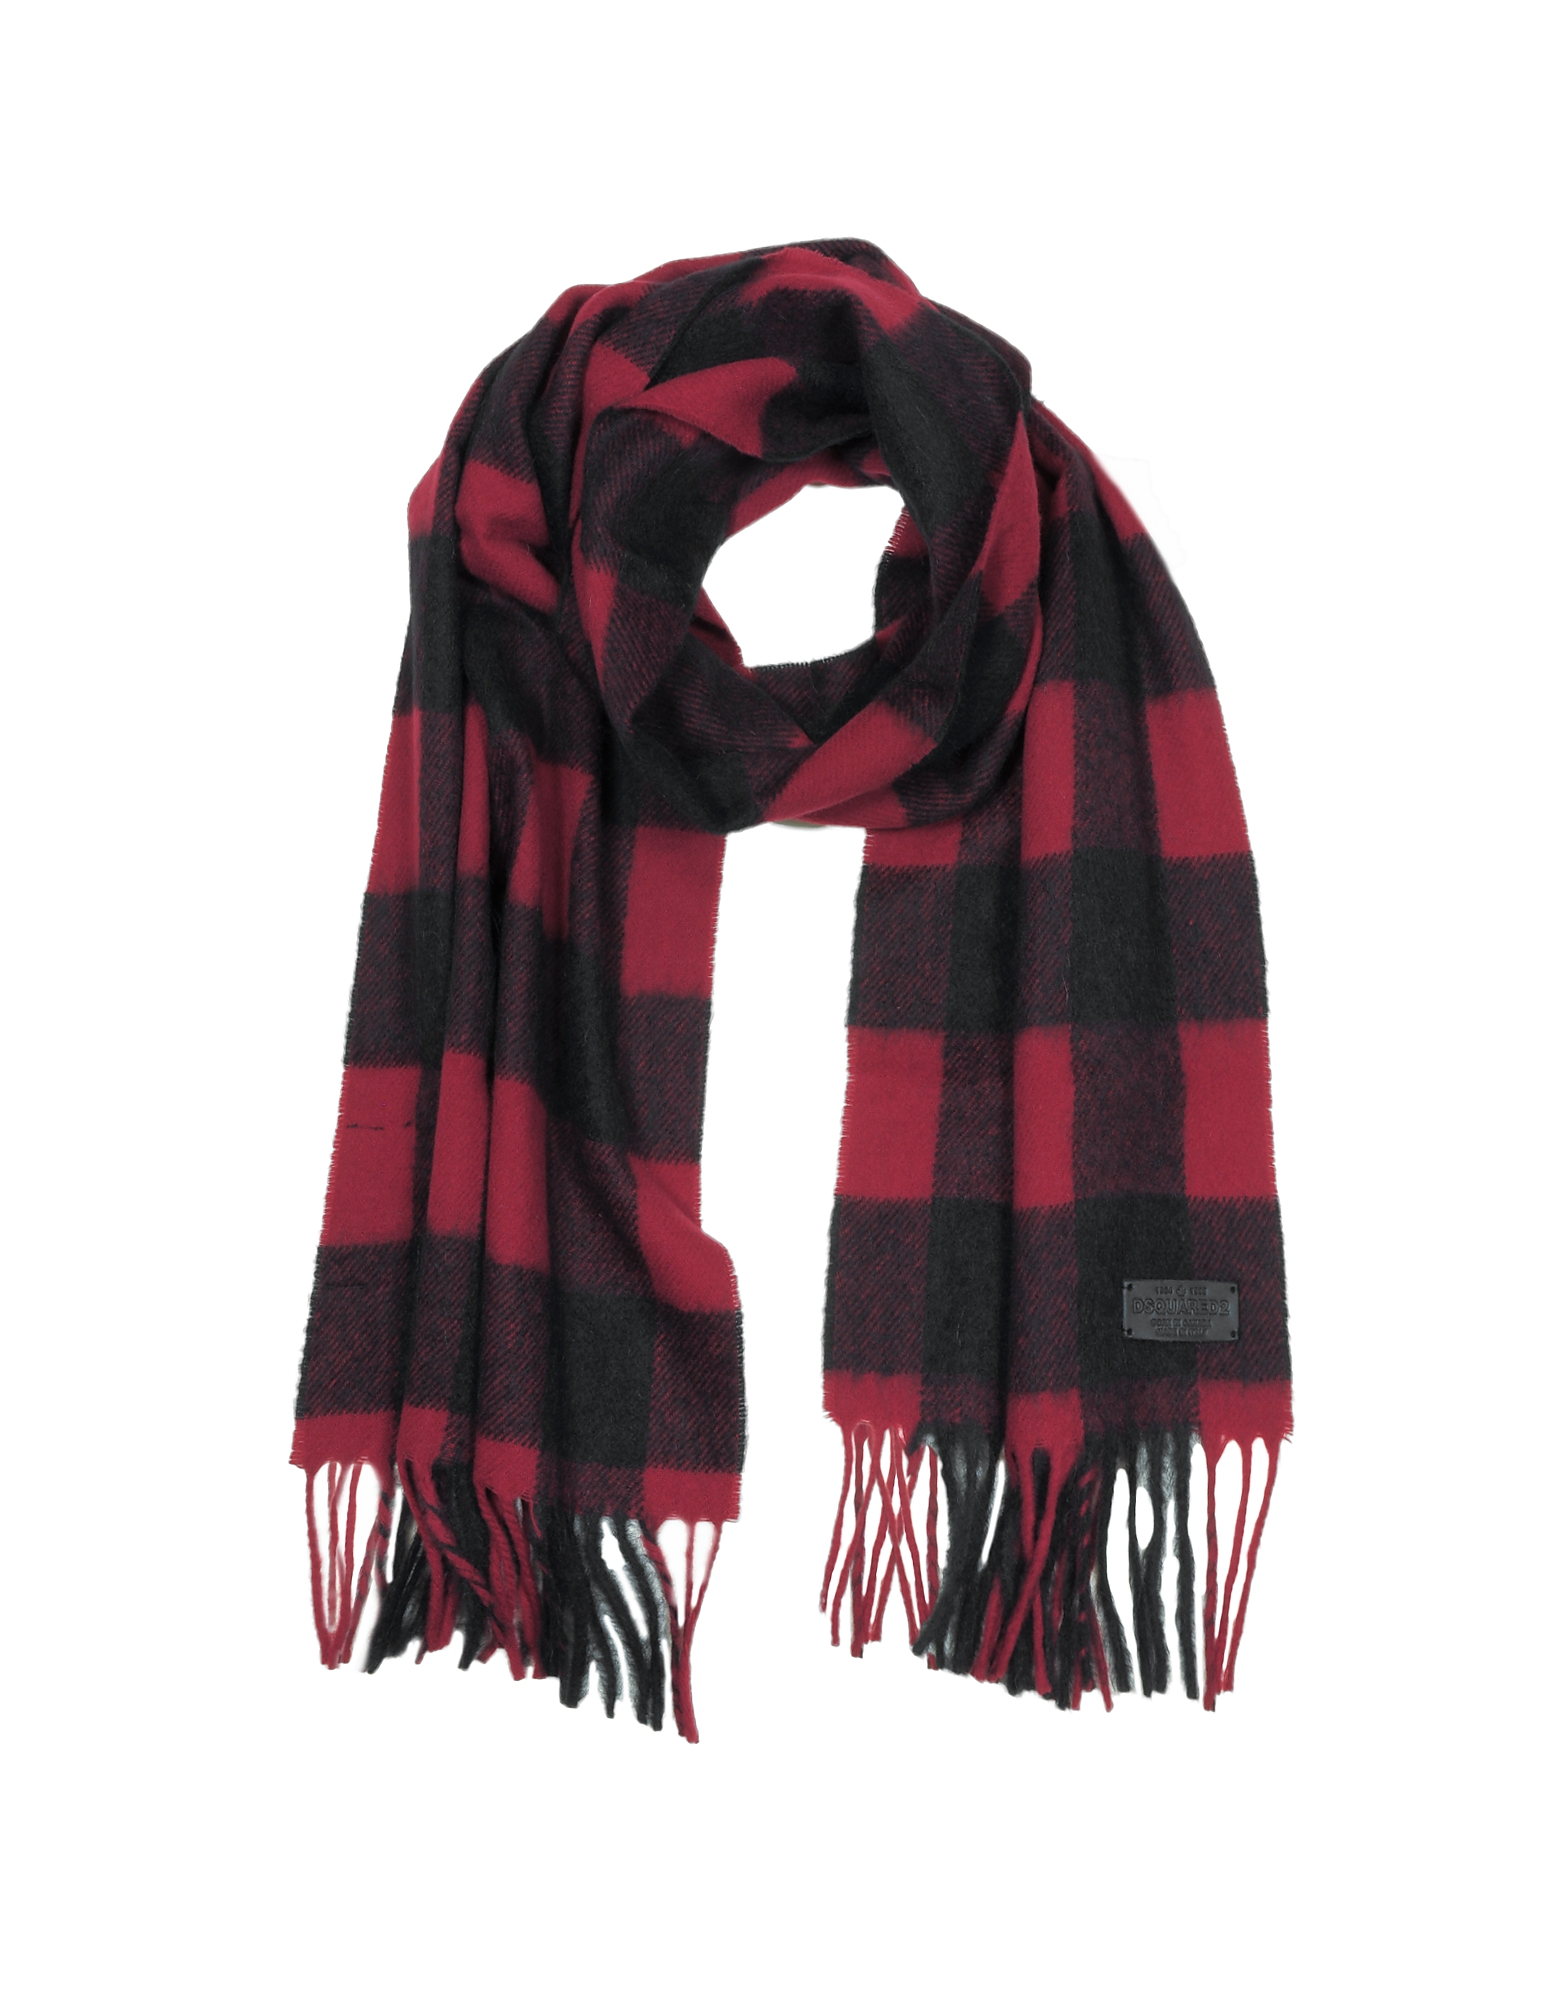 DSquared2 Men's Scarves, Black and Burgundy Checked Wool Blend Men's Scarf w/Fringes